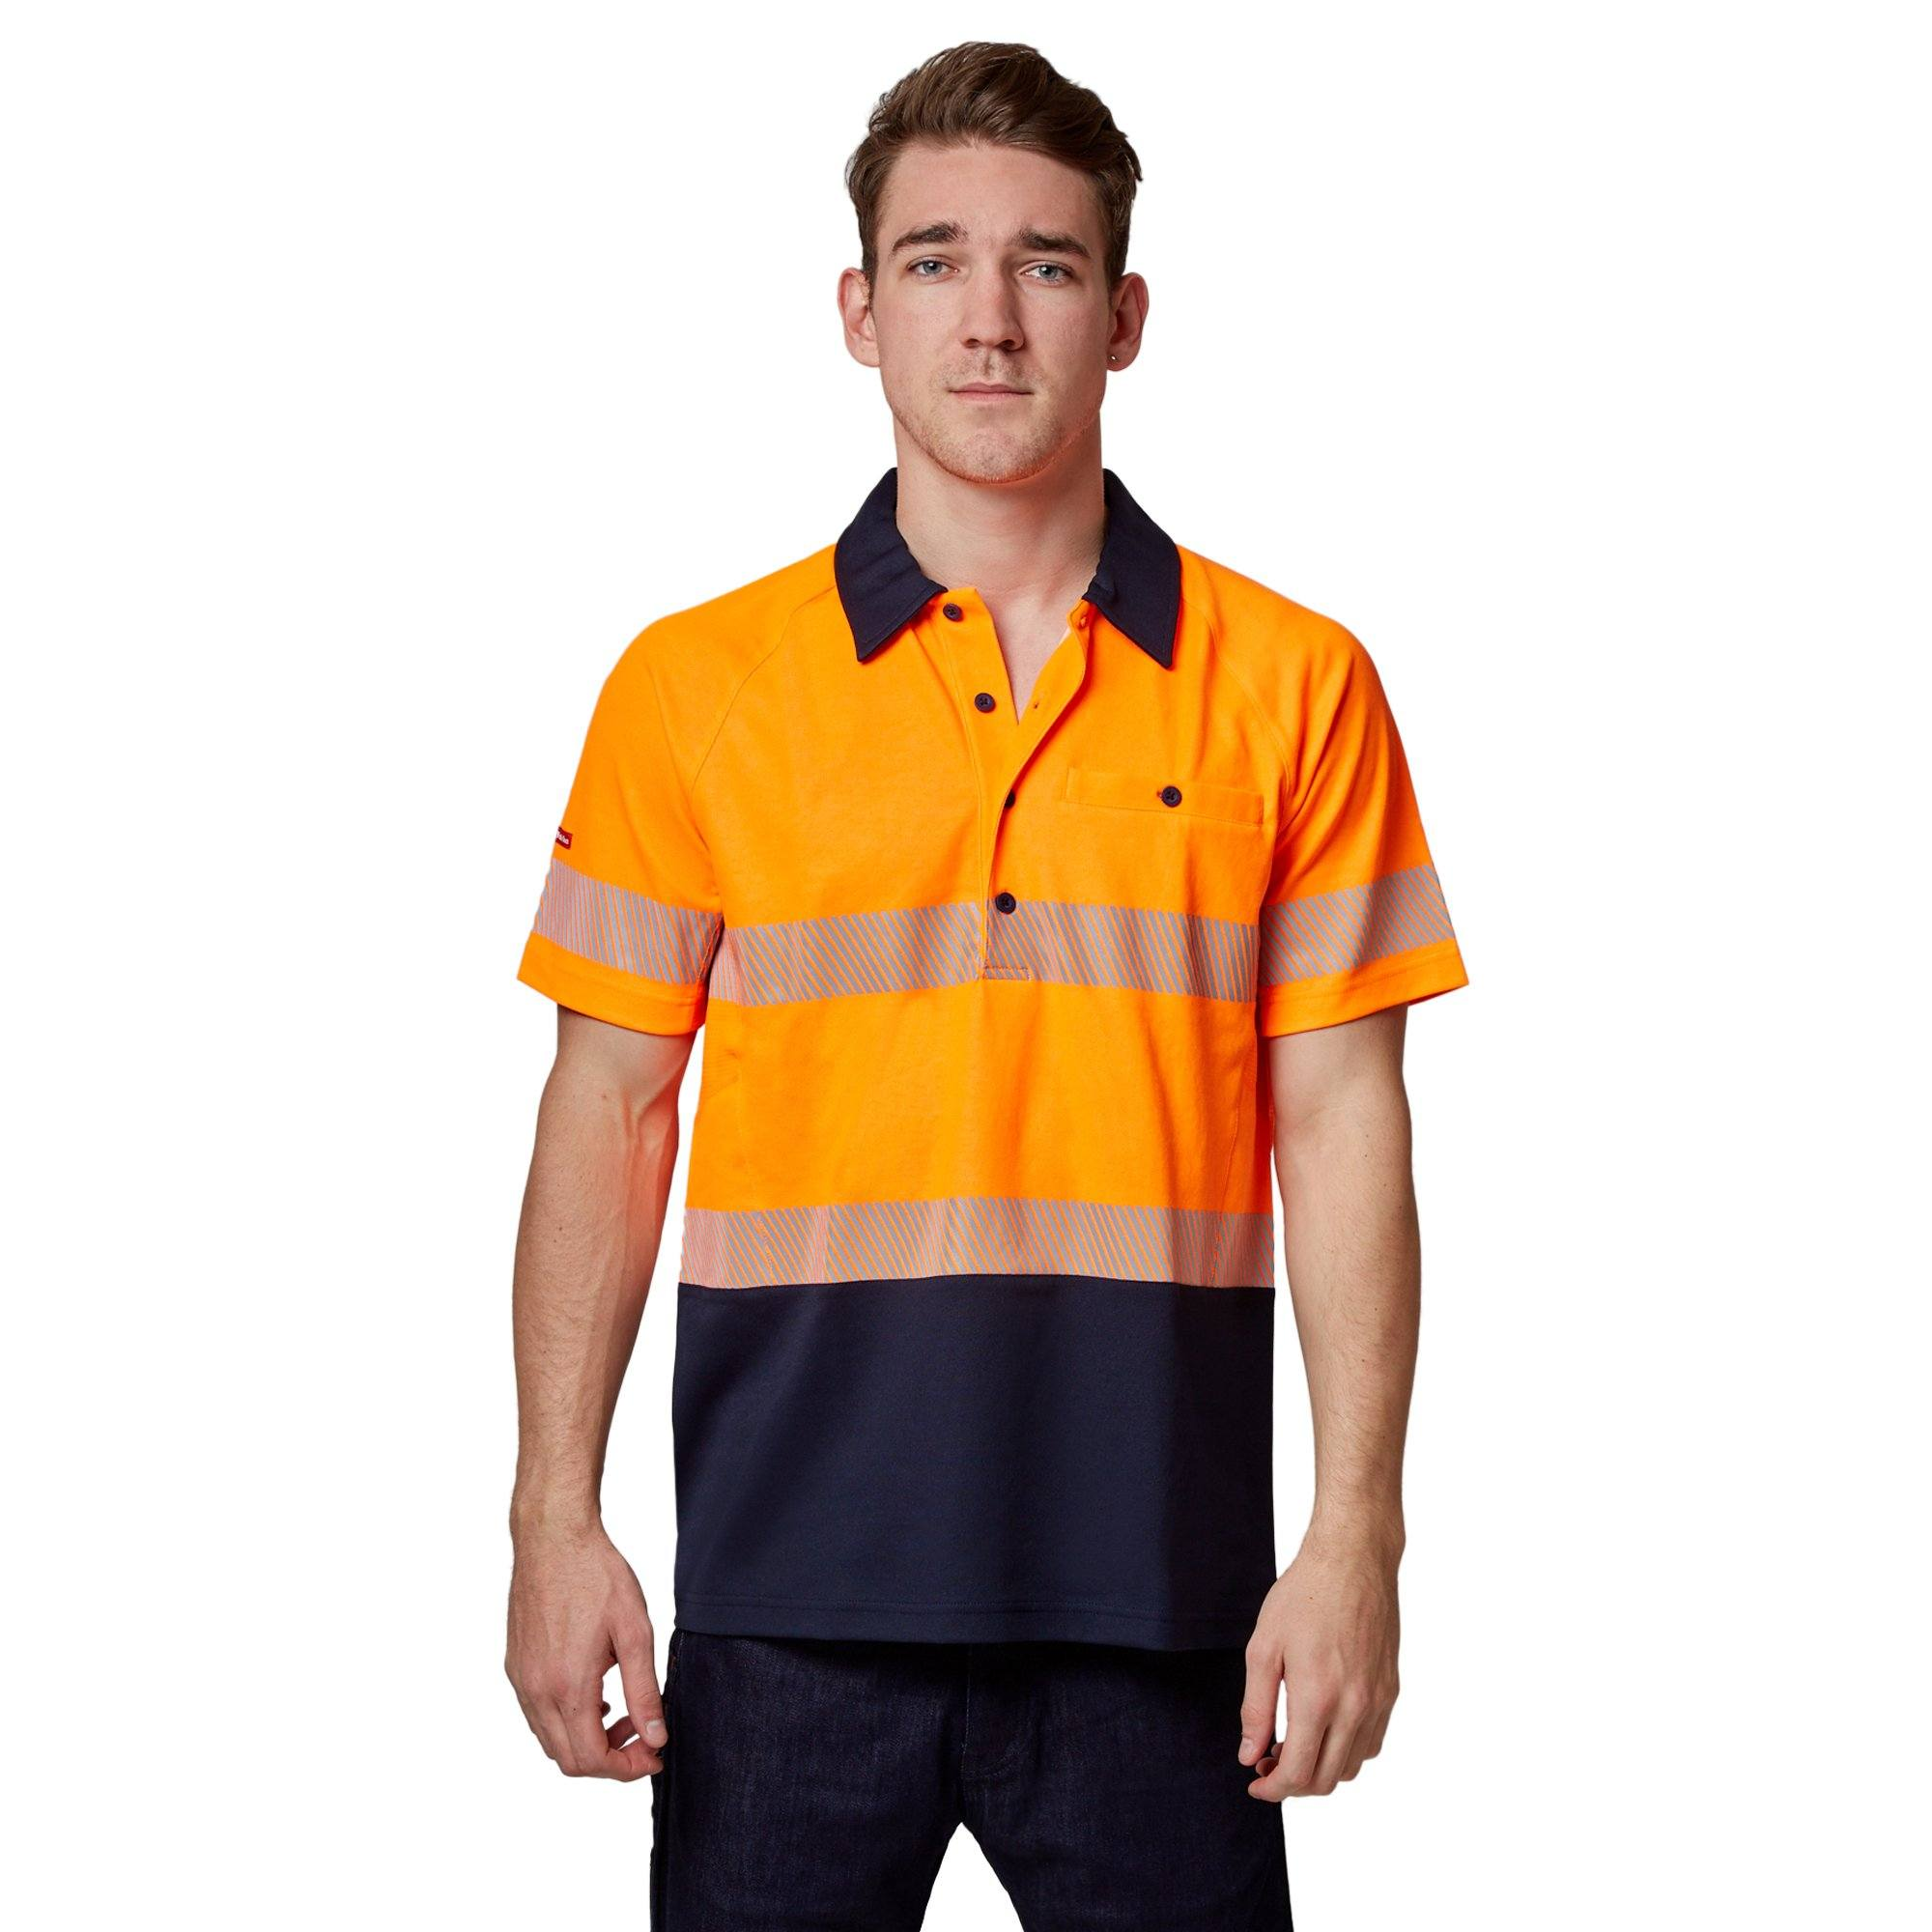 Hard Yakka High-Vis 2Tone Short Sleeve Ventilated Polo - Orange Workwear Isbister & Co Wholesale